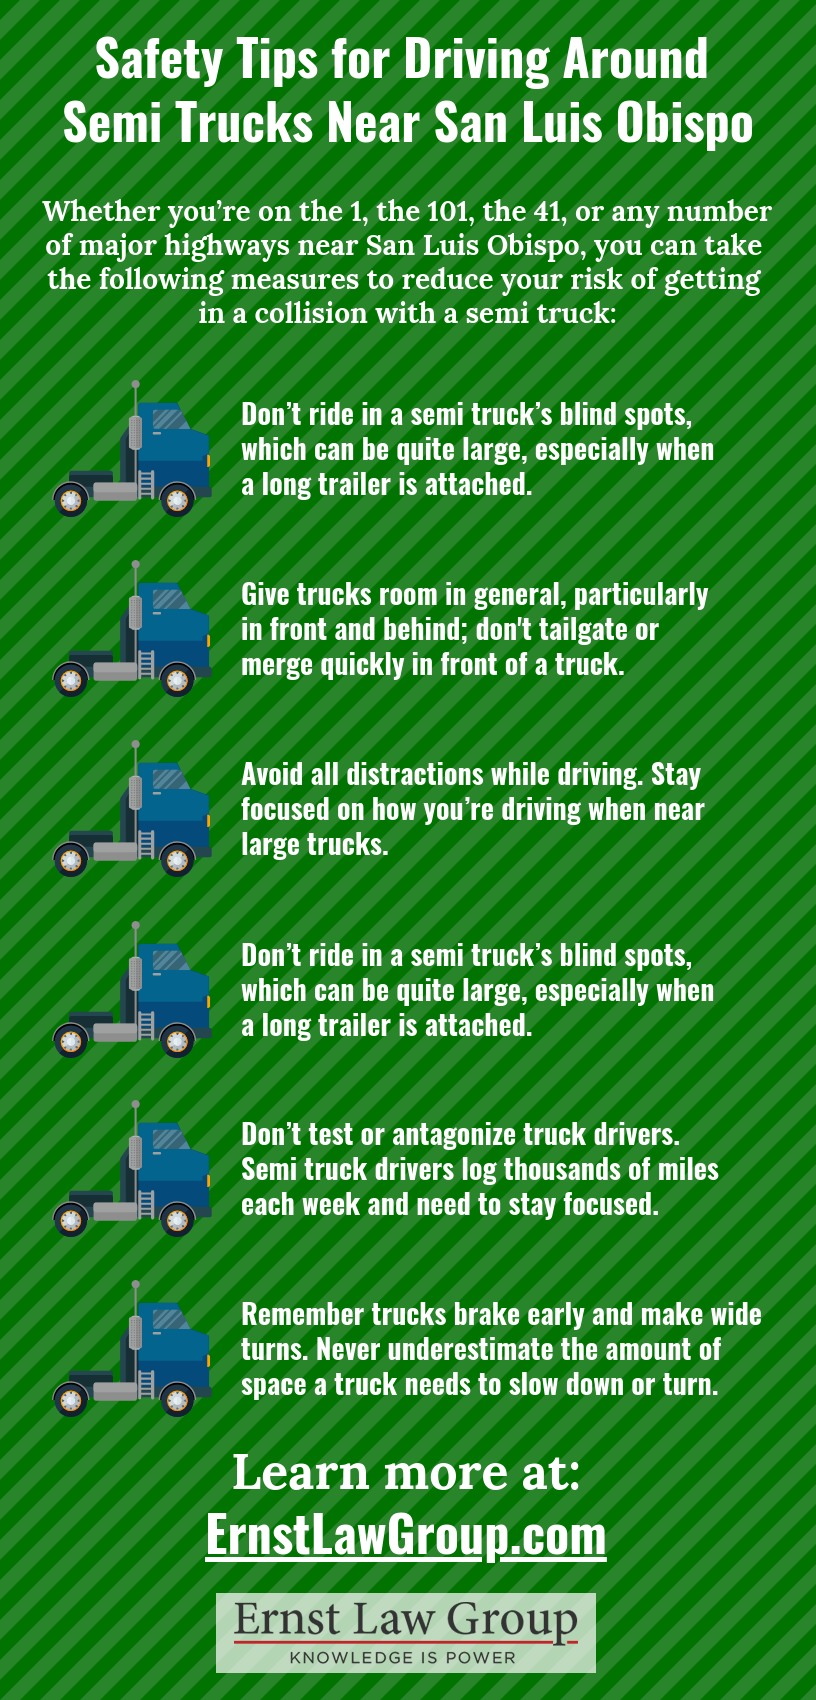 Safety Tips for Driving Around Semi Trucks Near San Luis Obispo